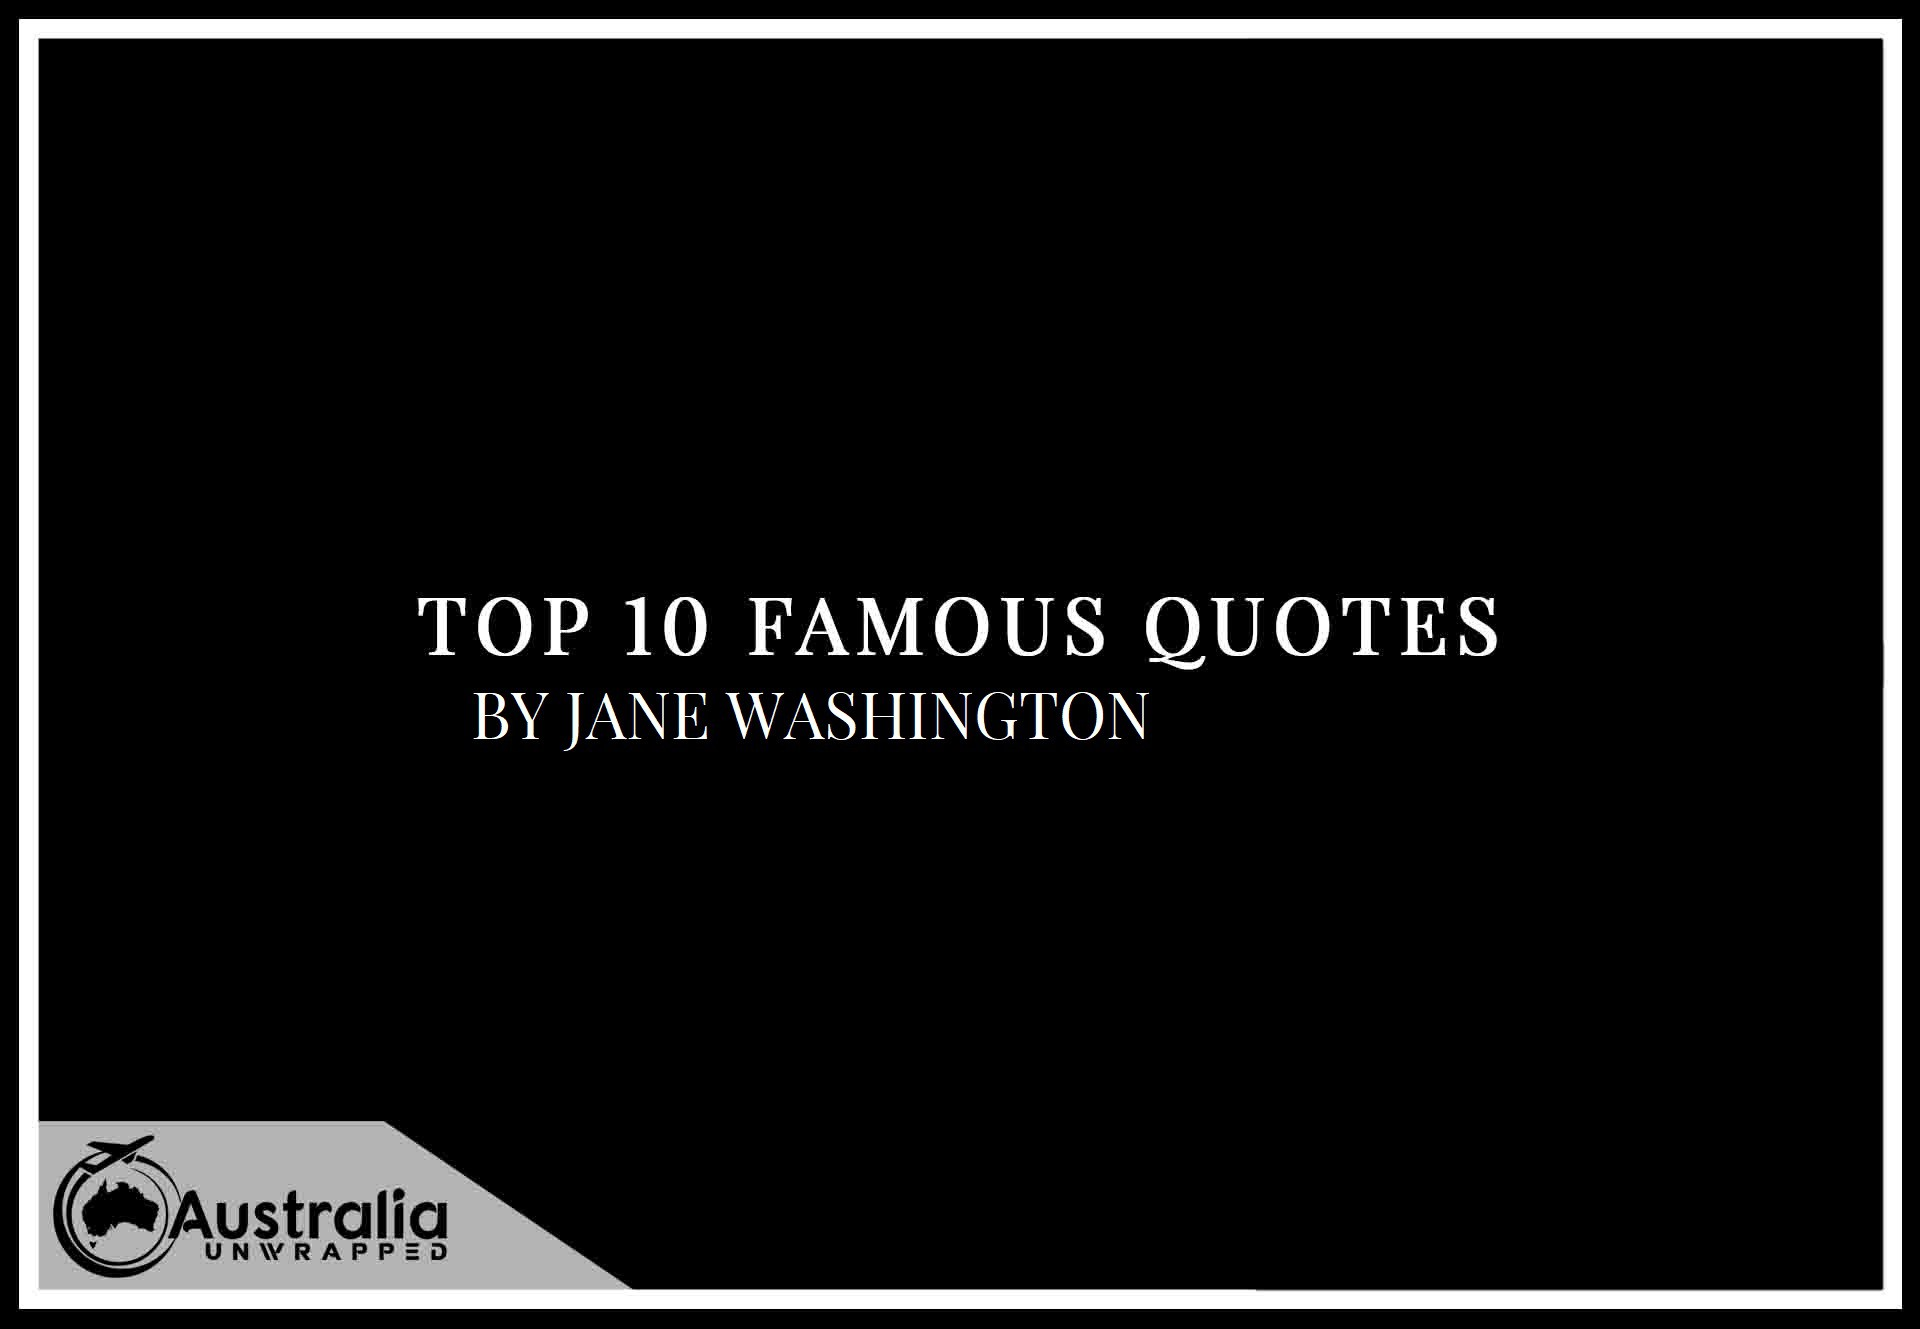 Top 10 Famous Quotes by Author Jane Washington